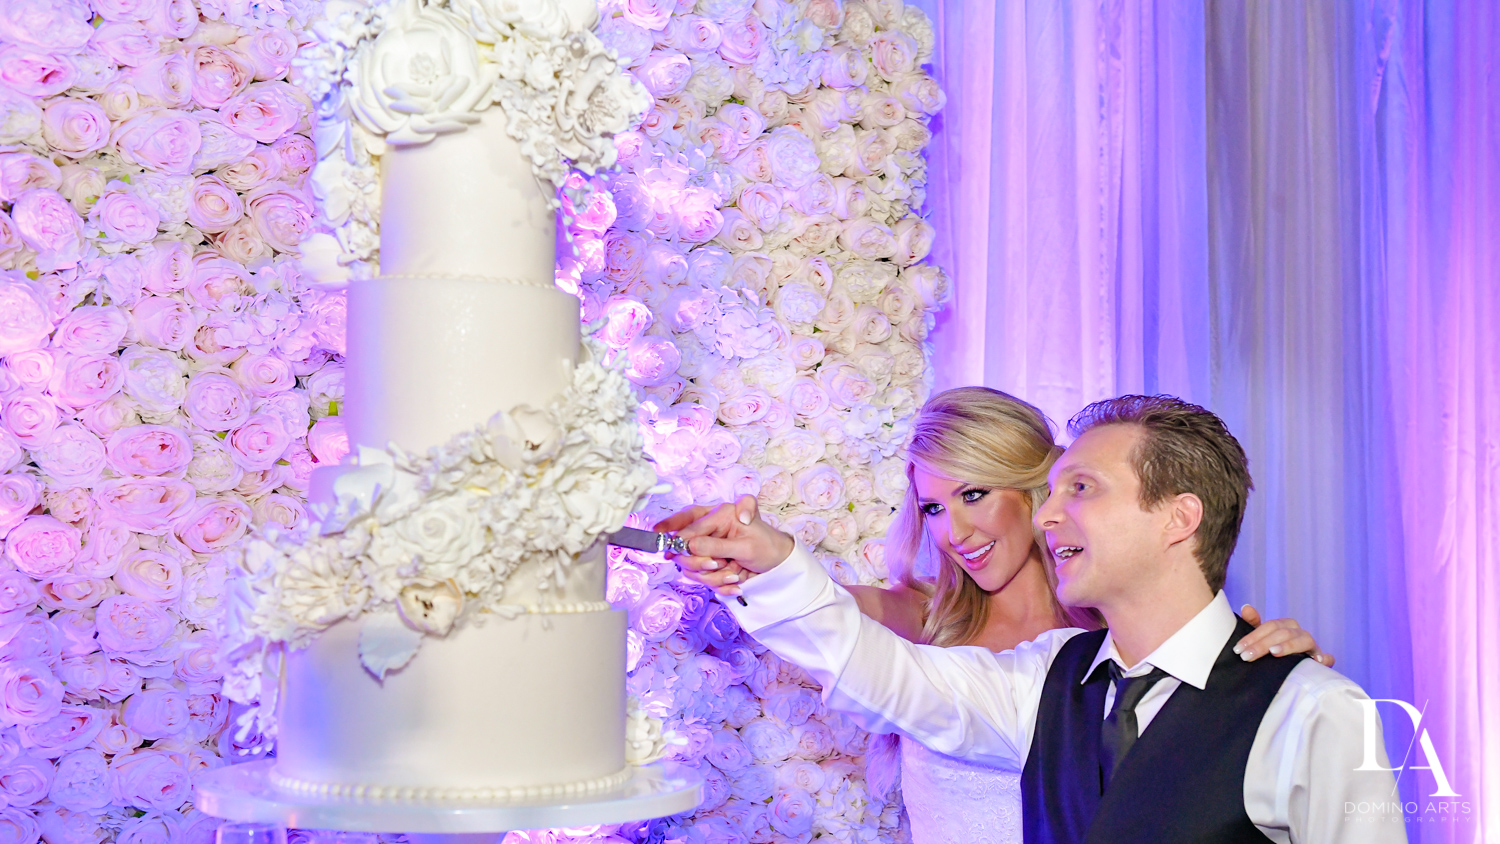 best wedding cake at Extravagant Wedding at The Breakers Palm Beach by Domino Arts Photography